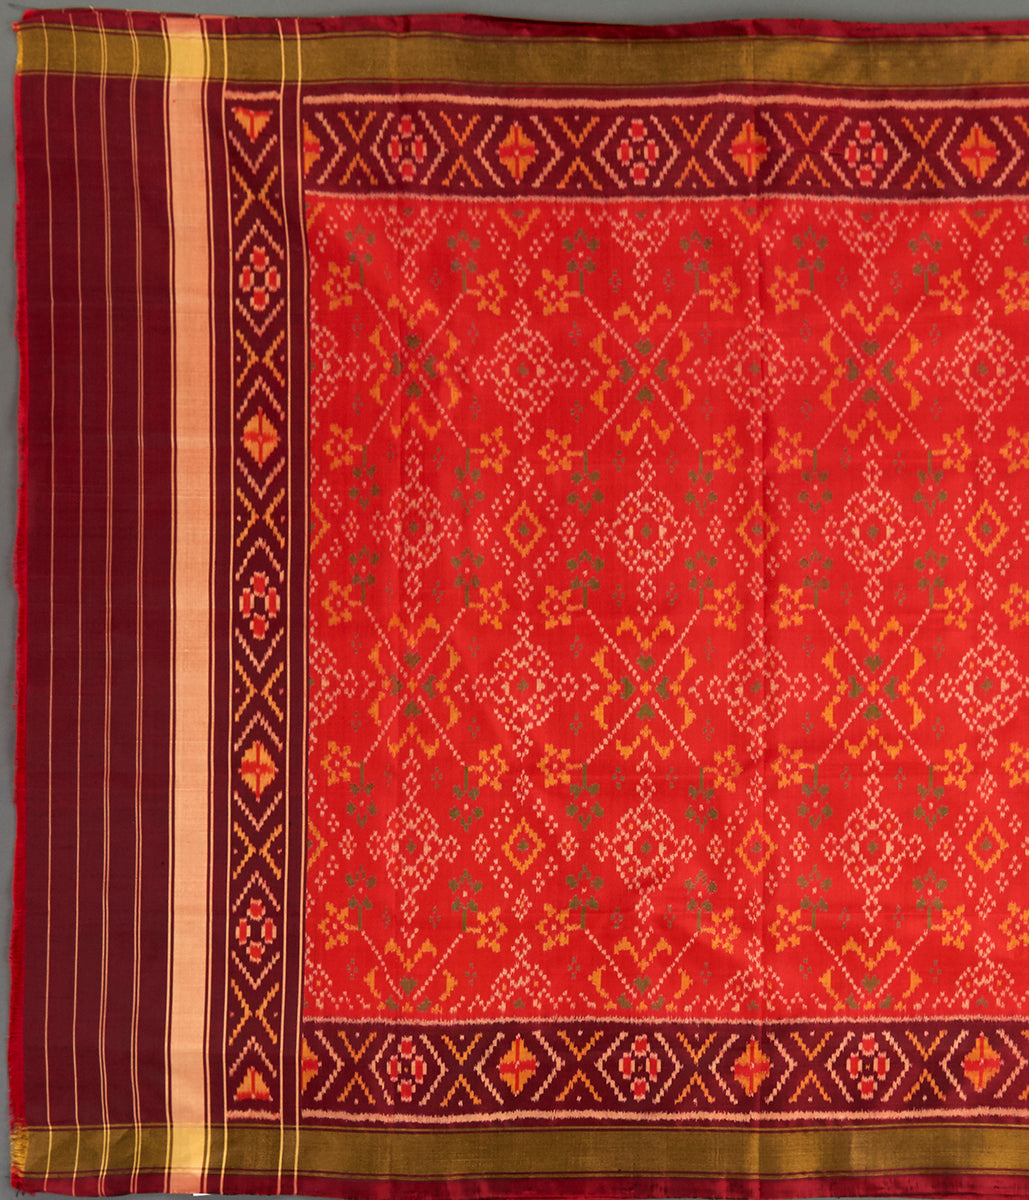 Handwoven Rajkot Silk Patola Dupatta in Orange with Mahroon Border